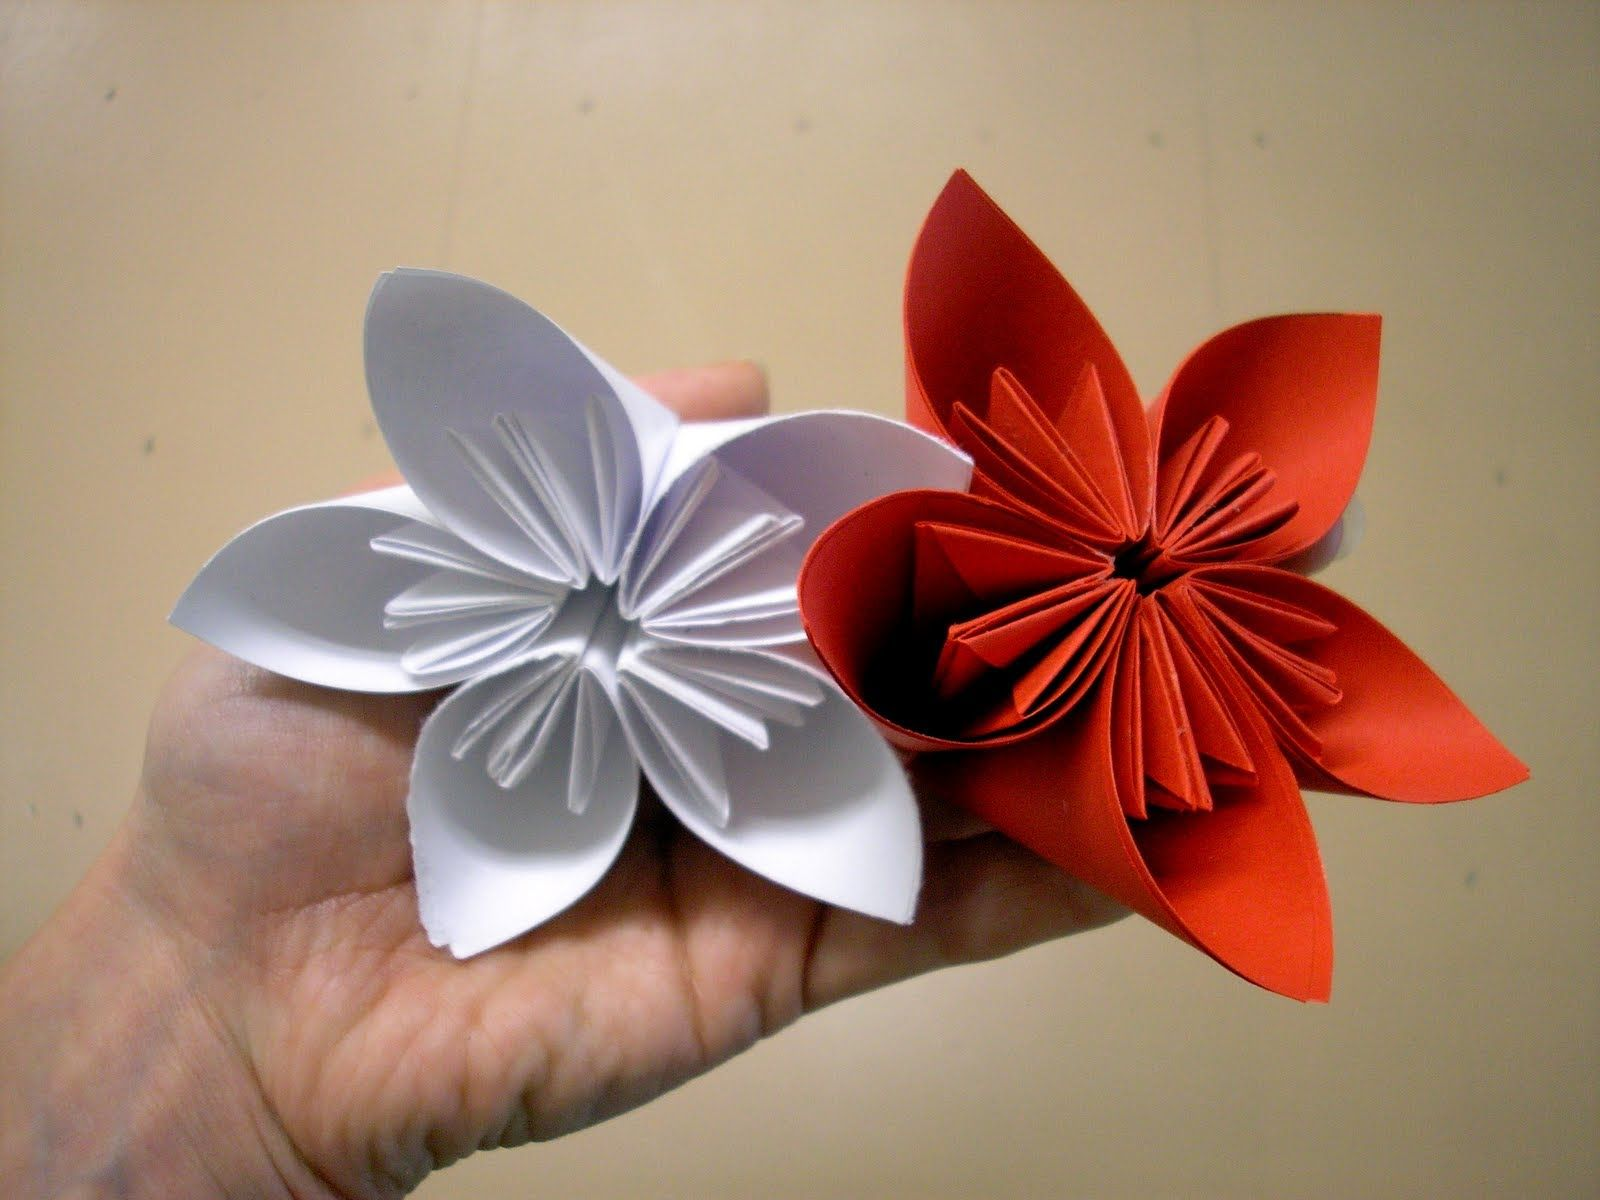 Origami Flowers For Beginners  How To Make Origami Flowers Very Easy   Youtube